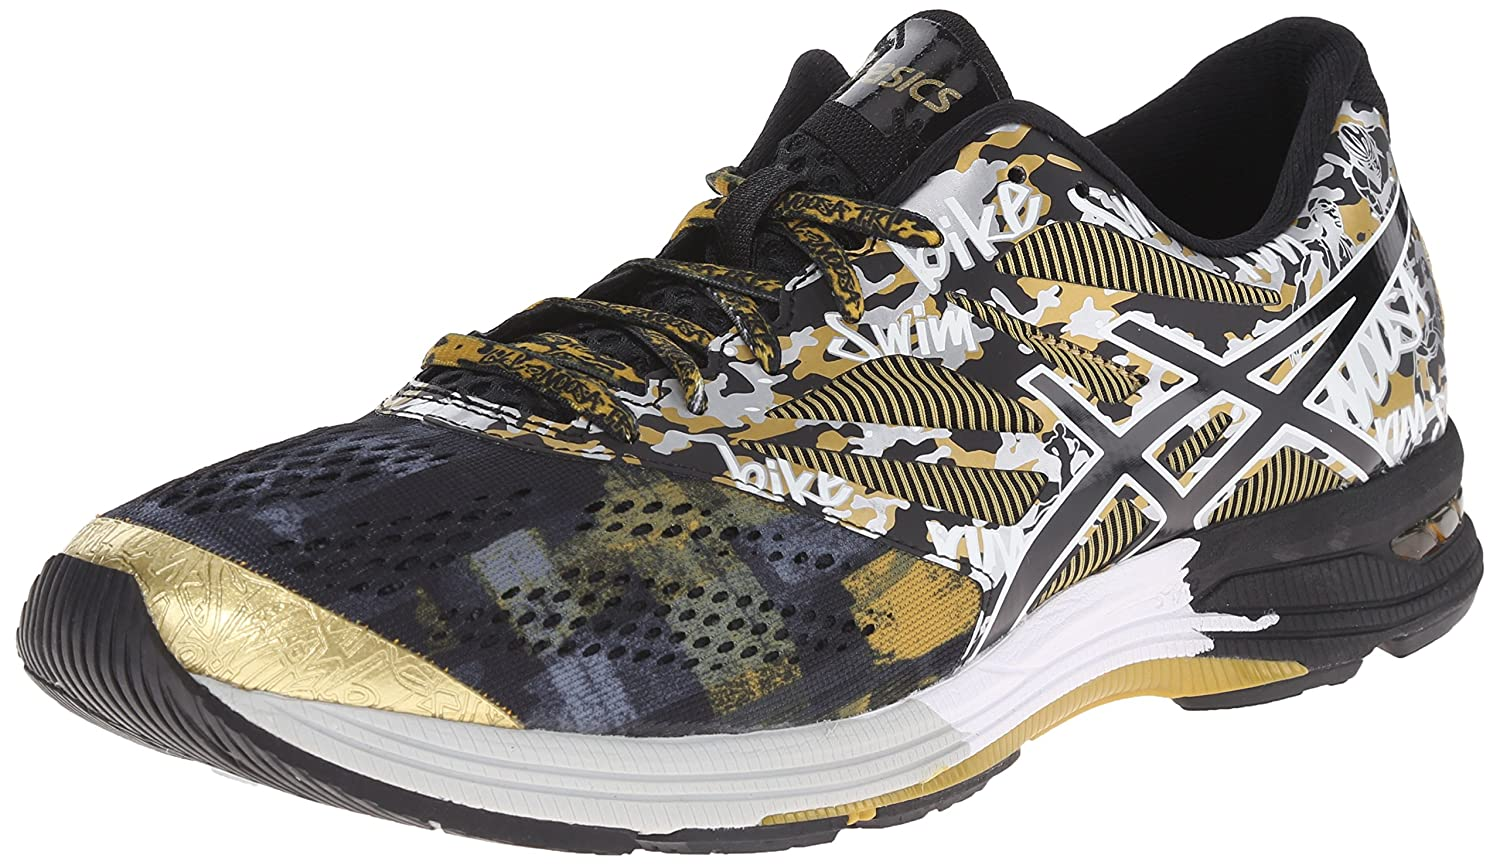 ASICS Men's GEL Noosa Tri 10 GR Running Shoe B00OY2PB1I 8 D(M) US|Black/Onyx/Gold Ribbon